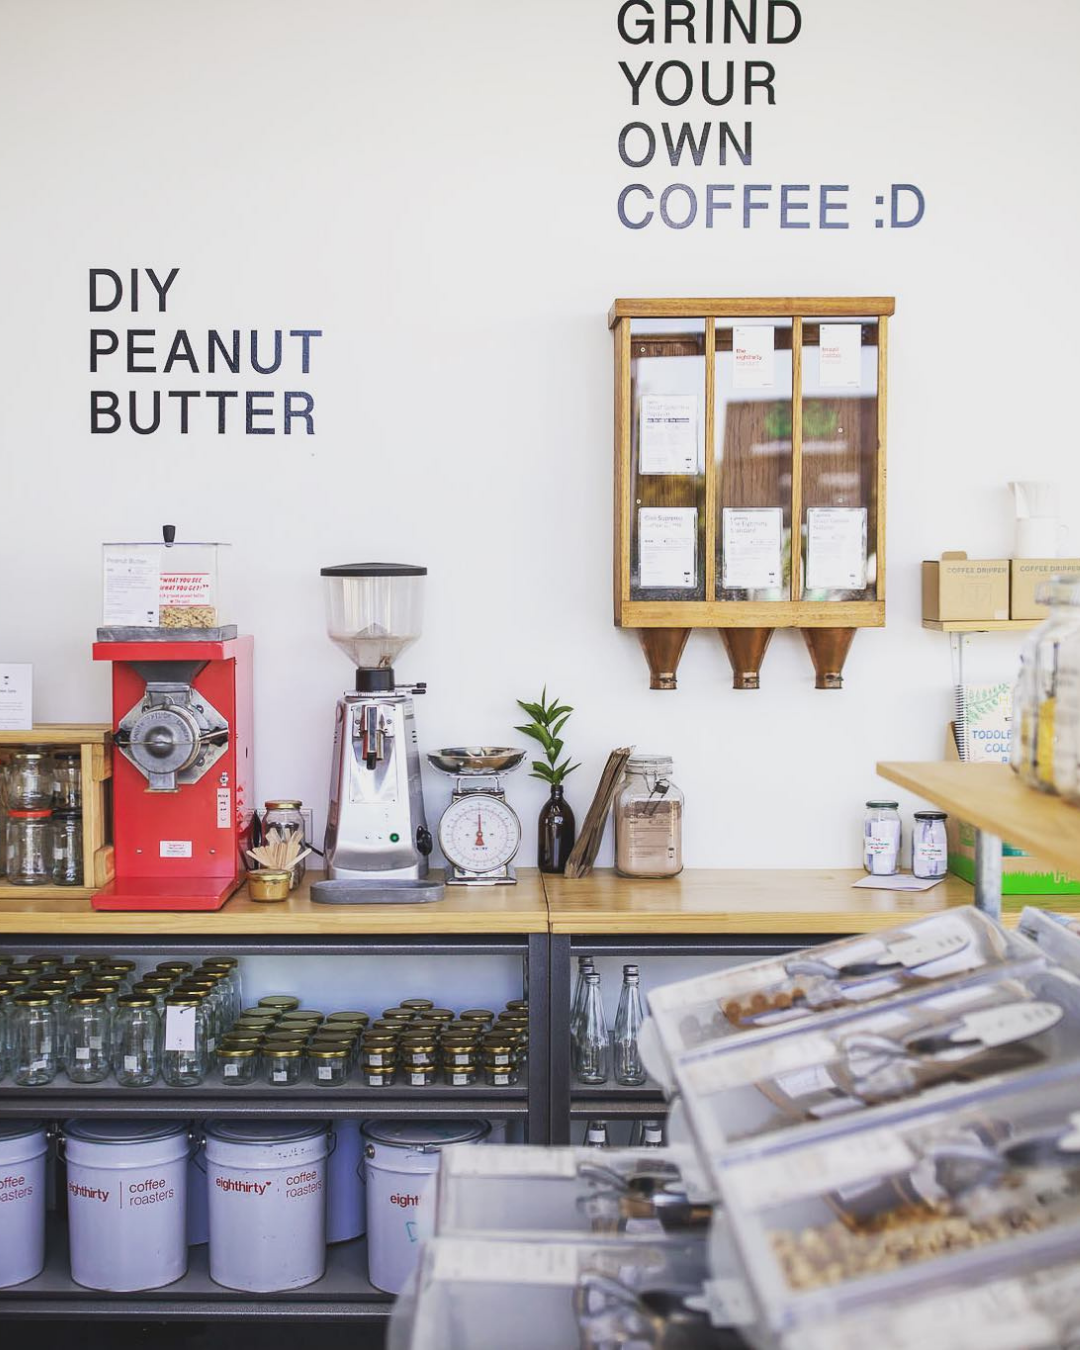 A wall filled with bulk bin goodies including DIY peanut butter and grind-your-own coffee.